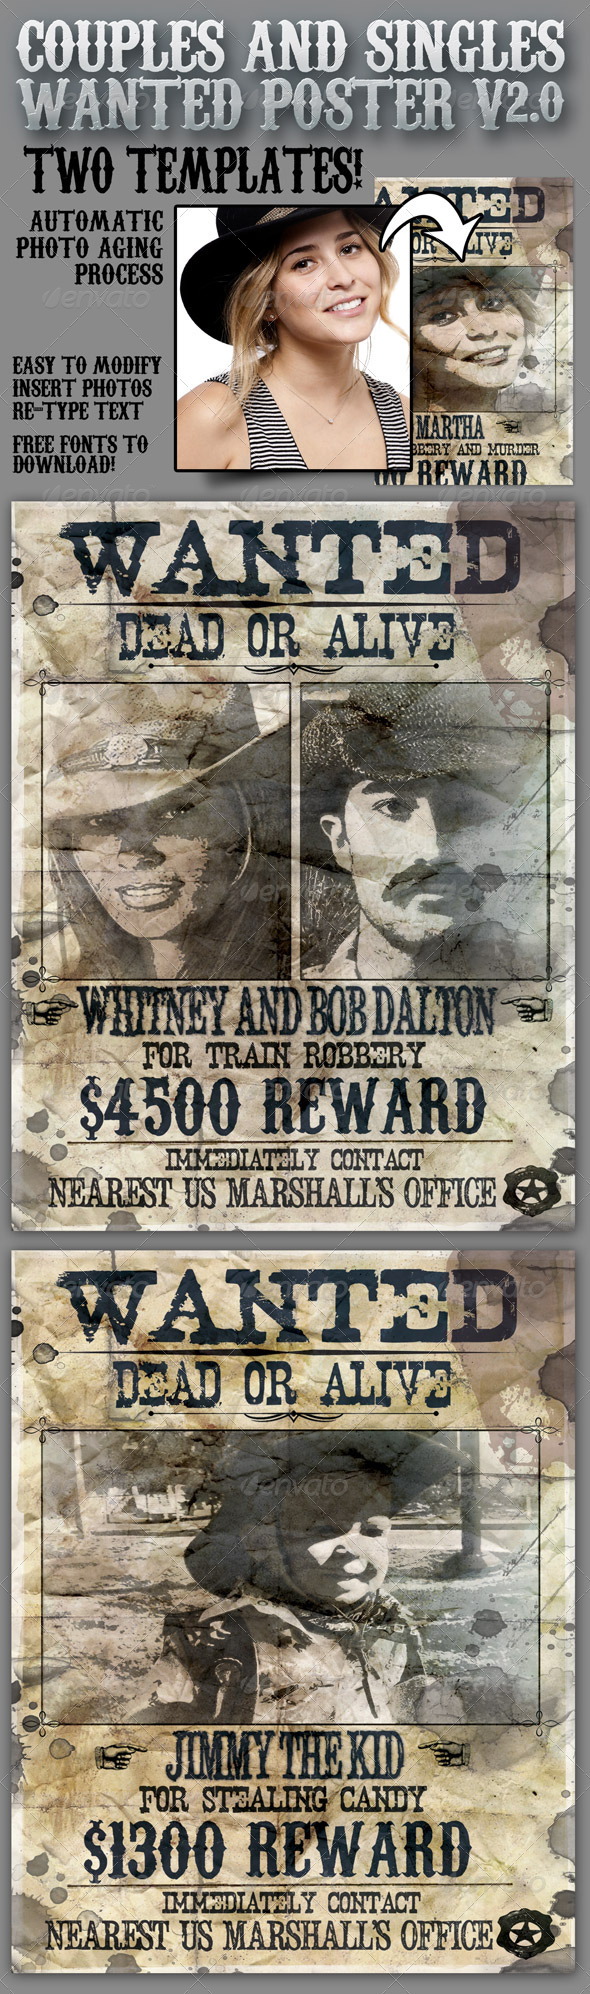 Wanted Poster 8.5x11 for Singles and Couples V2.0 - Flyers Print Templates